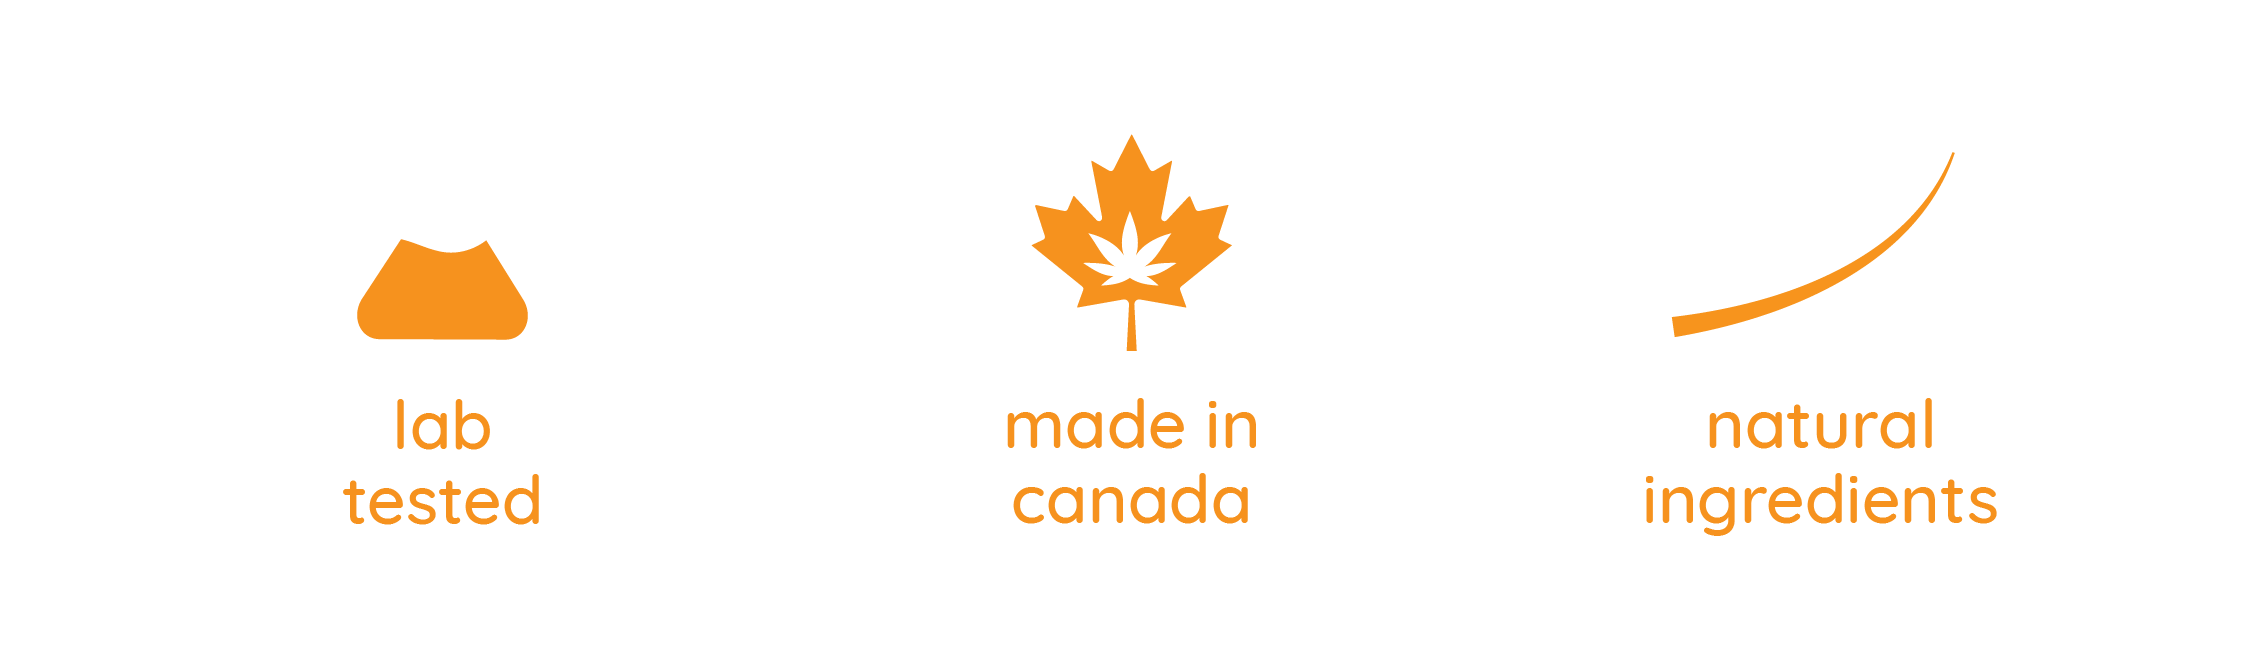 Lab tested; Made in Canada; Natural Ingredients